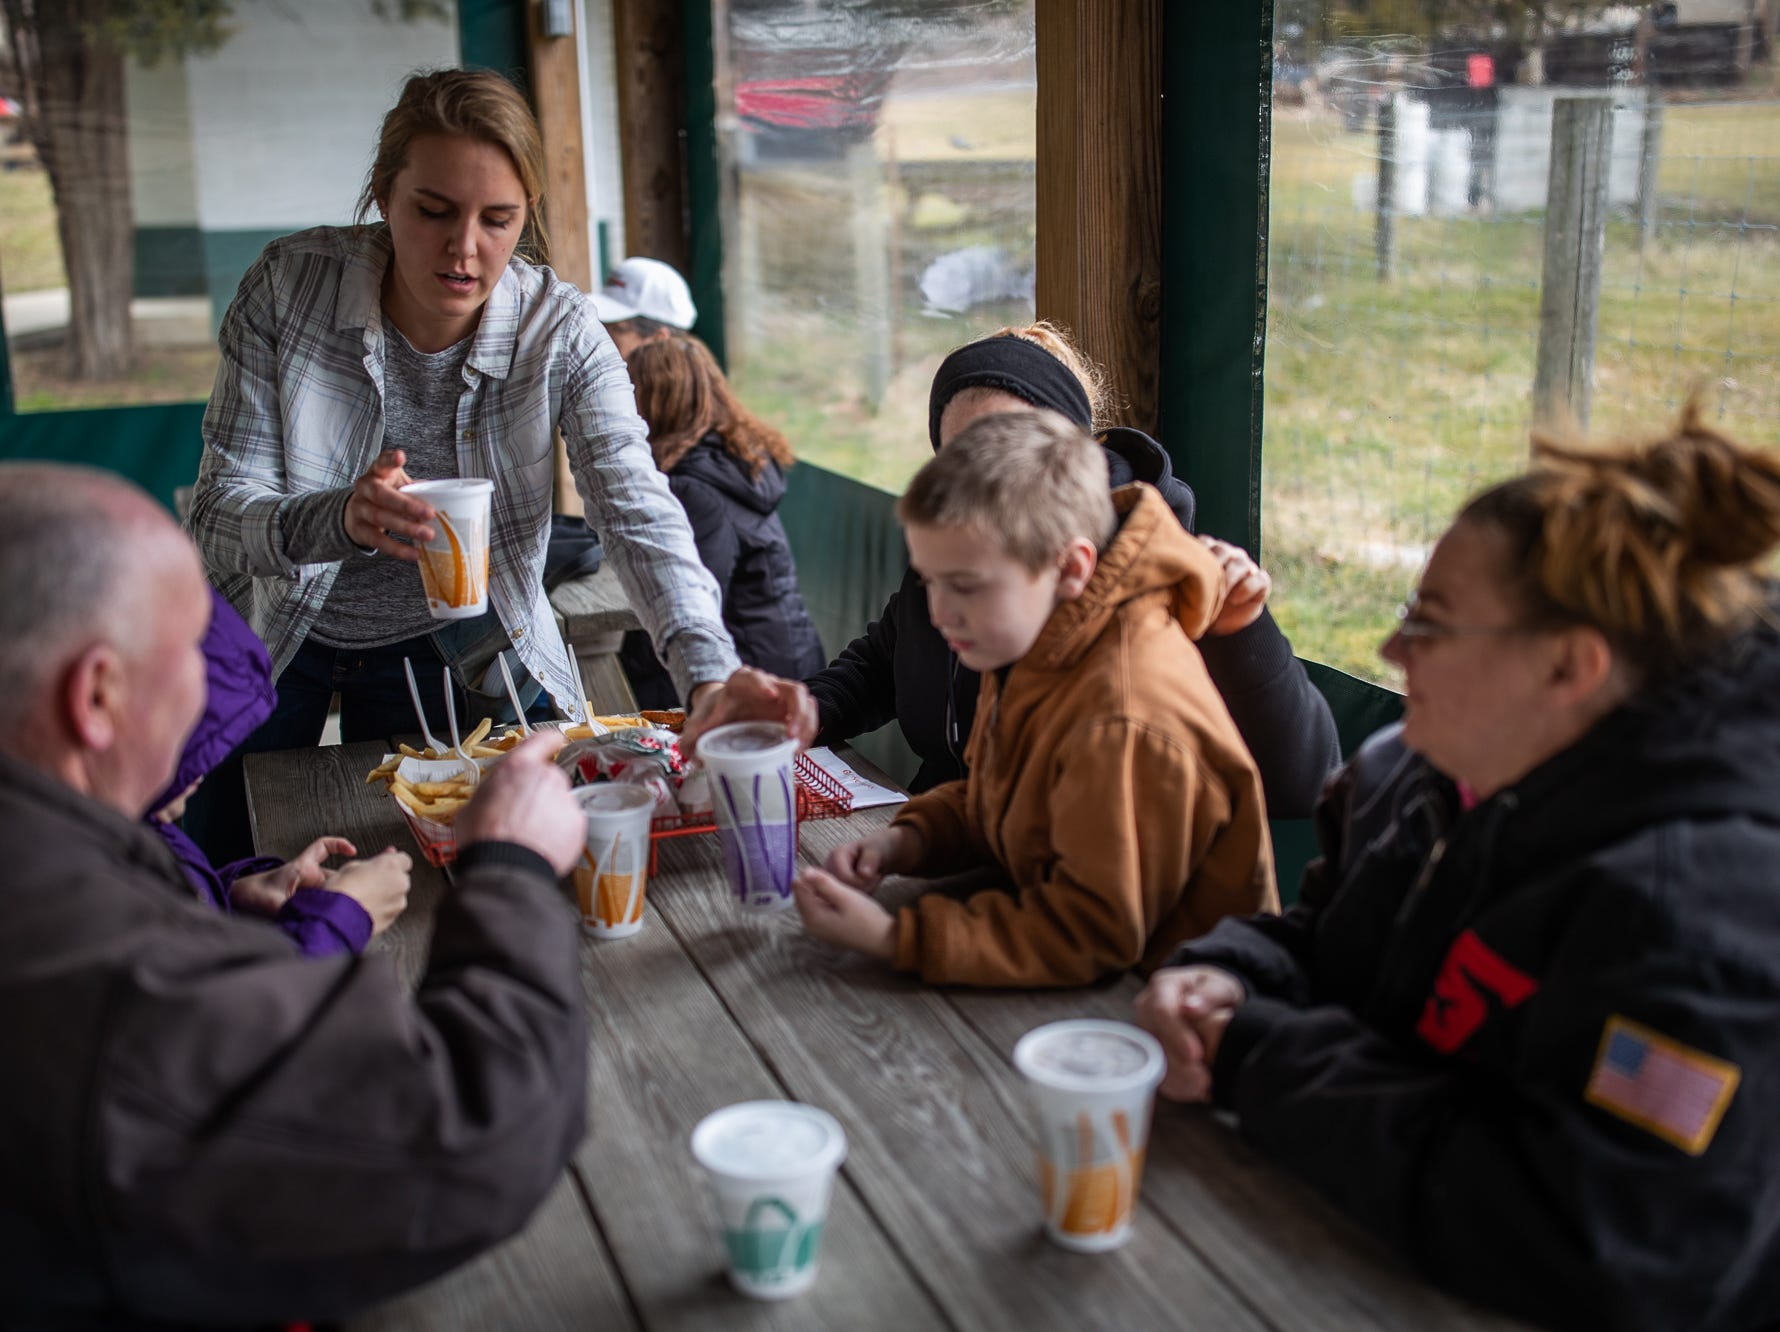 An employee drops off the order of David Light, left, Trevor Light, 11, second from left behind David, Sharon Light, third from right, Mason Light, 8, second from right, and Terrie Light, right, during Tropical Treat's first day of business for the 2019 season, Wednesday, March 13, 2019, in Berwick Township.